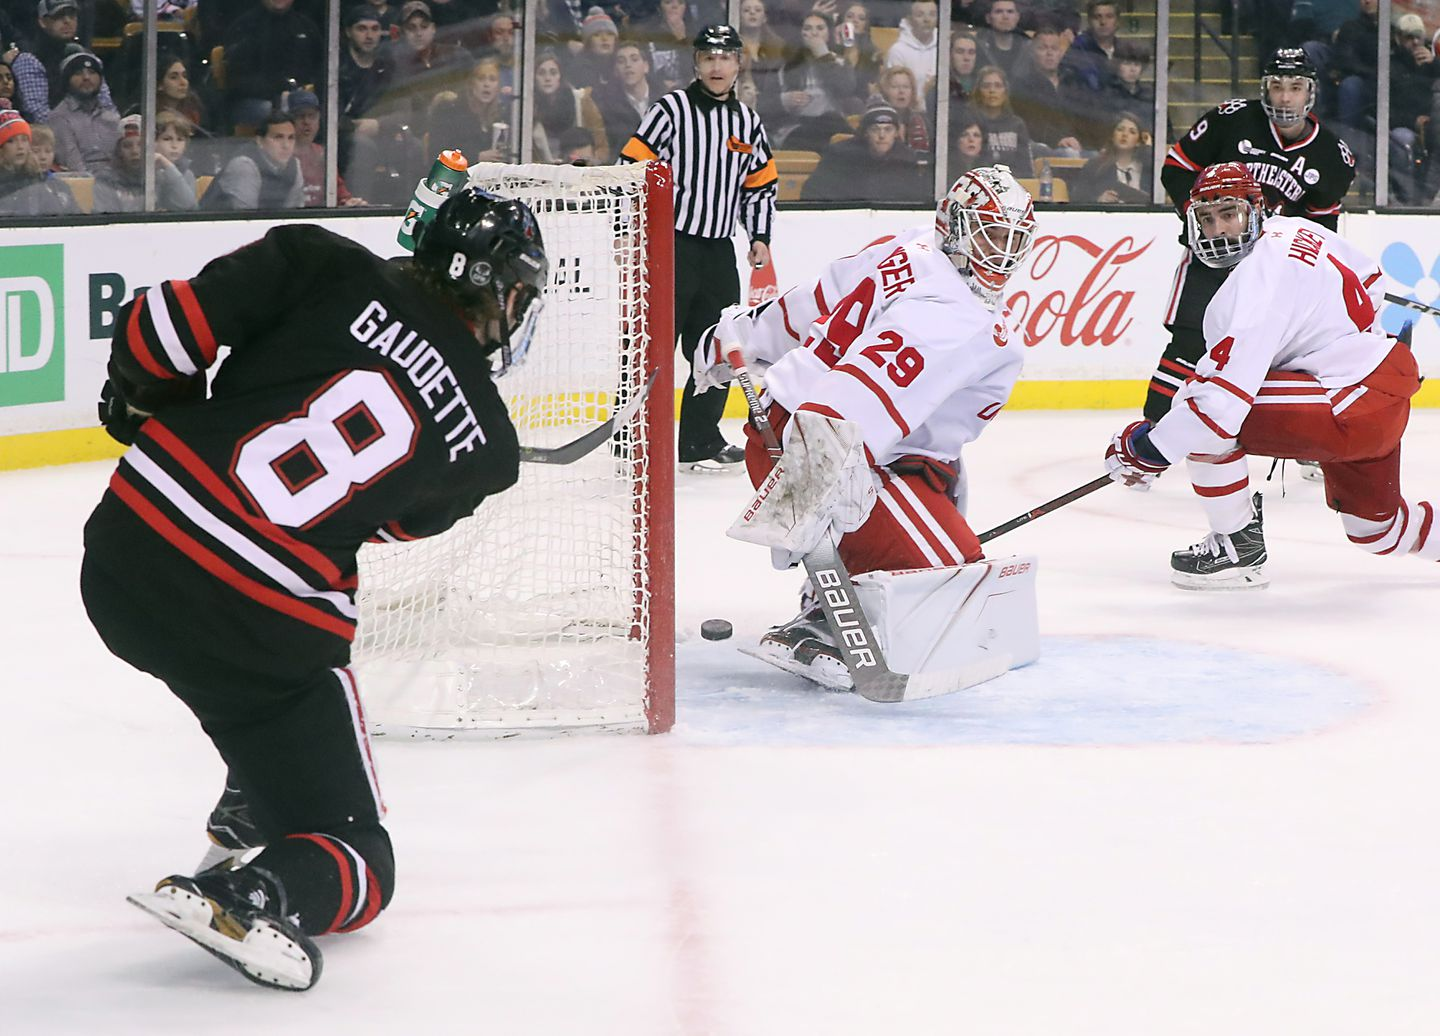 Northeastern Adam Gaudette beats BU goaltender Jake Oettinger from a difficult angle in the second period for one of his three goals in the Hukies' 5-2 victory.